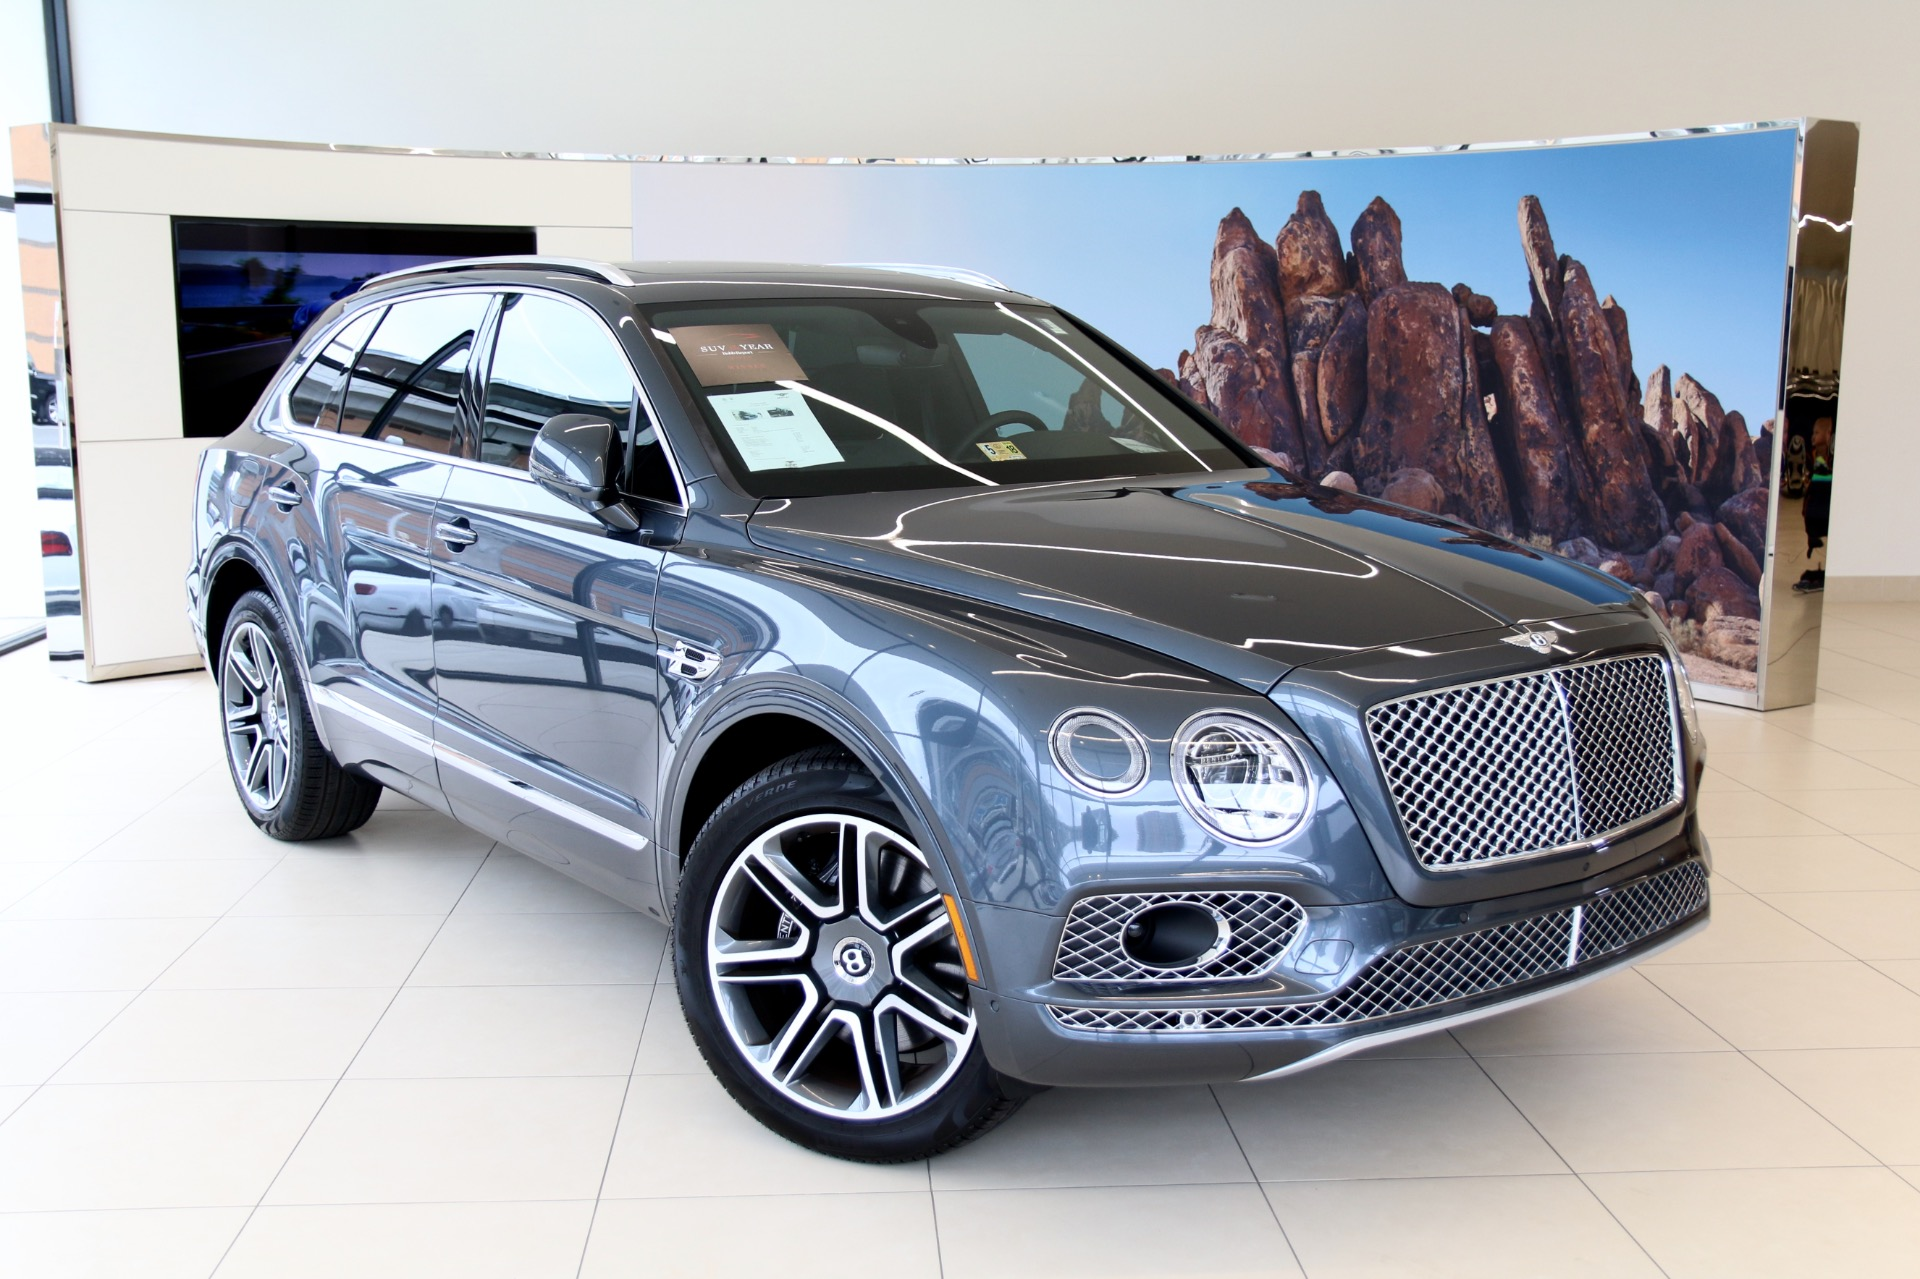 Bentley Bentayga For Sale >> 2018 Bentley Bentayga W12 Activity Stock 8nc017796 For